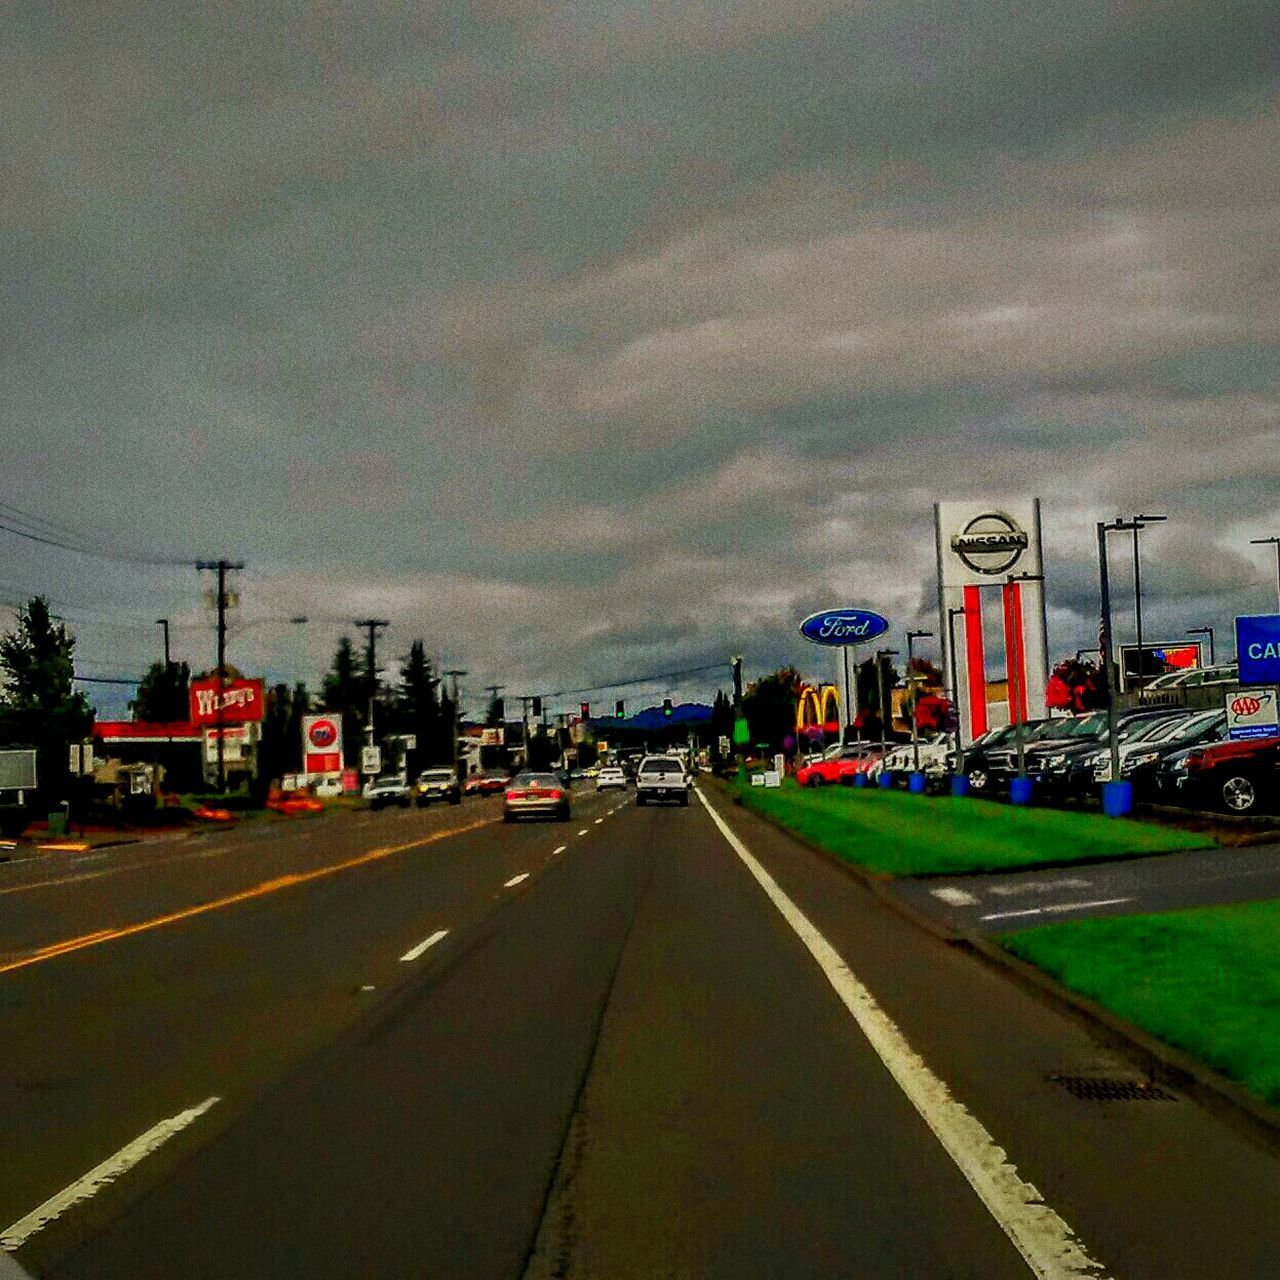 Welcome to the Quiet & Sleepy Town of McMinnville, Oregon . This is the Main Strip or Downtown you could even call it Uptown its a Bustling Busy Area of Town. Enjoying The View My Home Cloudy Morning Funnel Cloud Advisory is Still in Effect Yikes! But Seriously im not Scared . I hope you all have a Wondetful Day Hanging Out